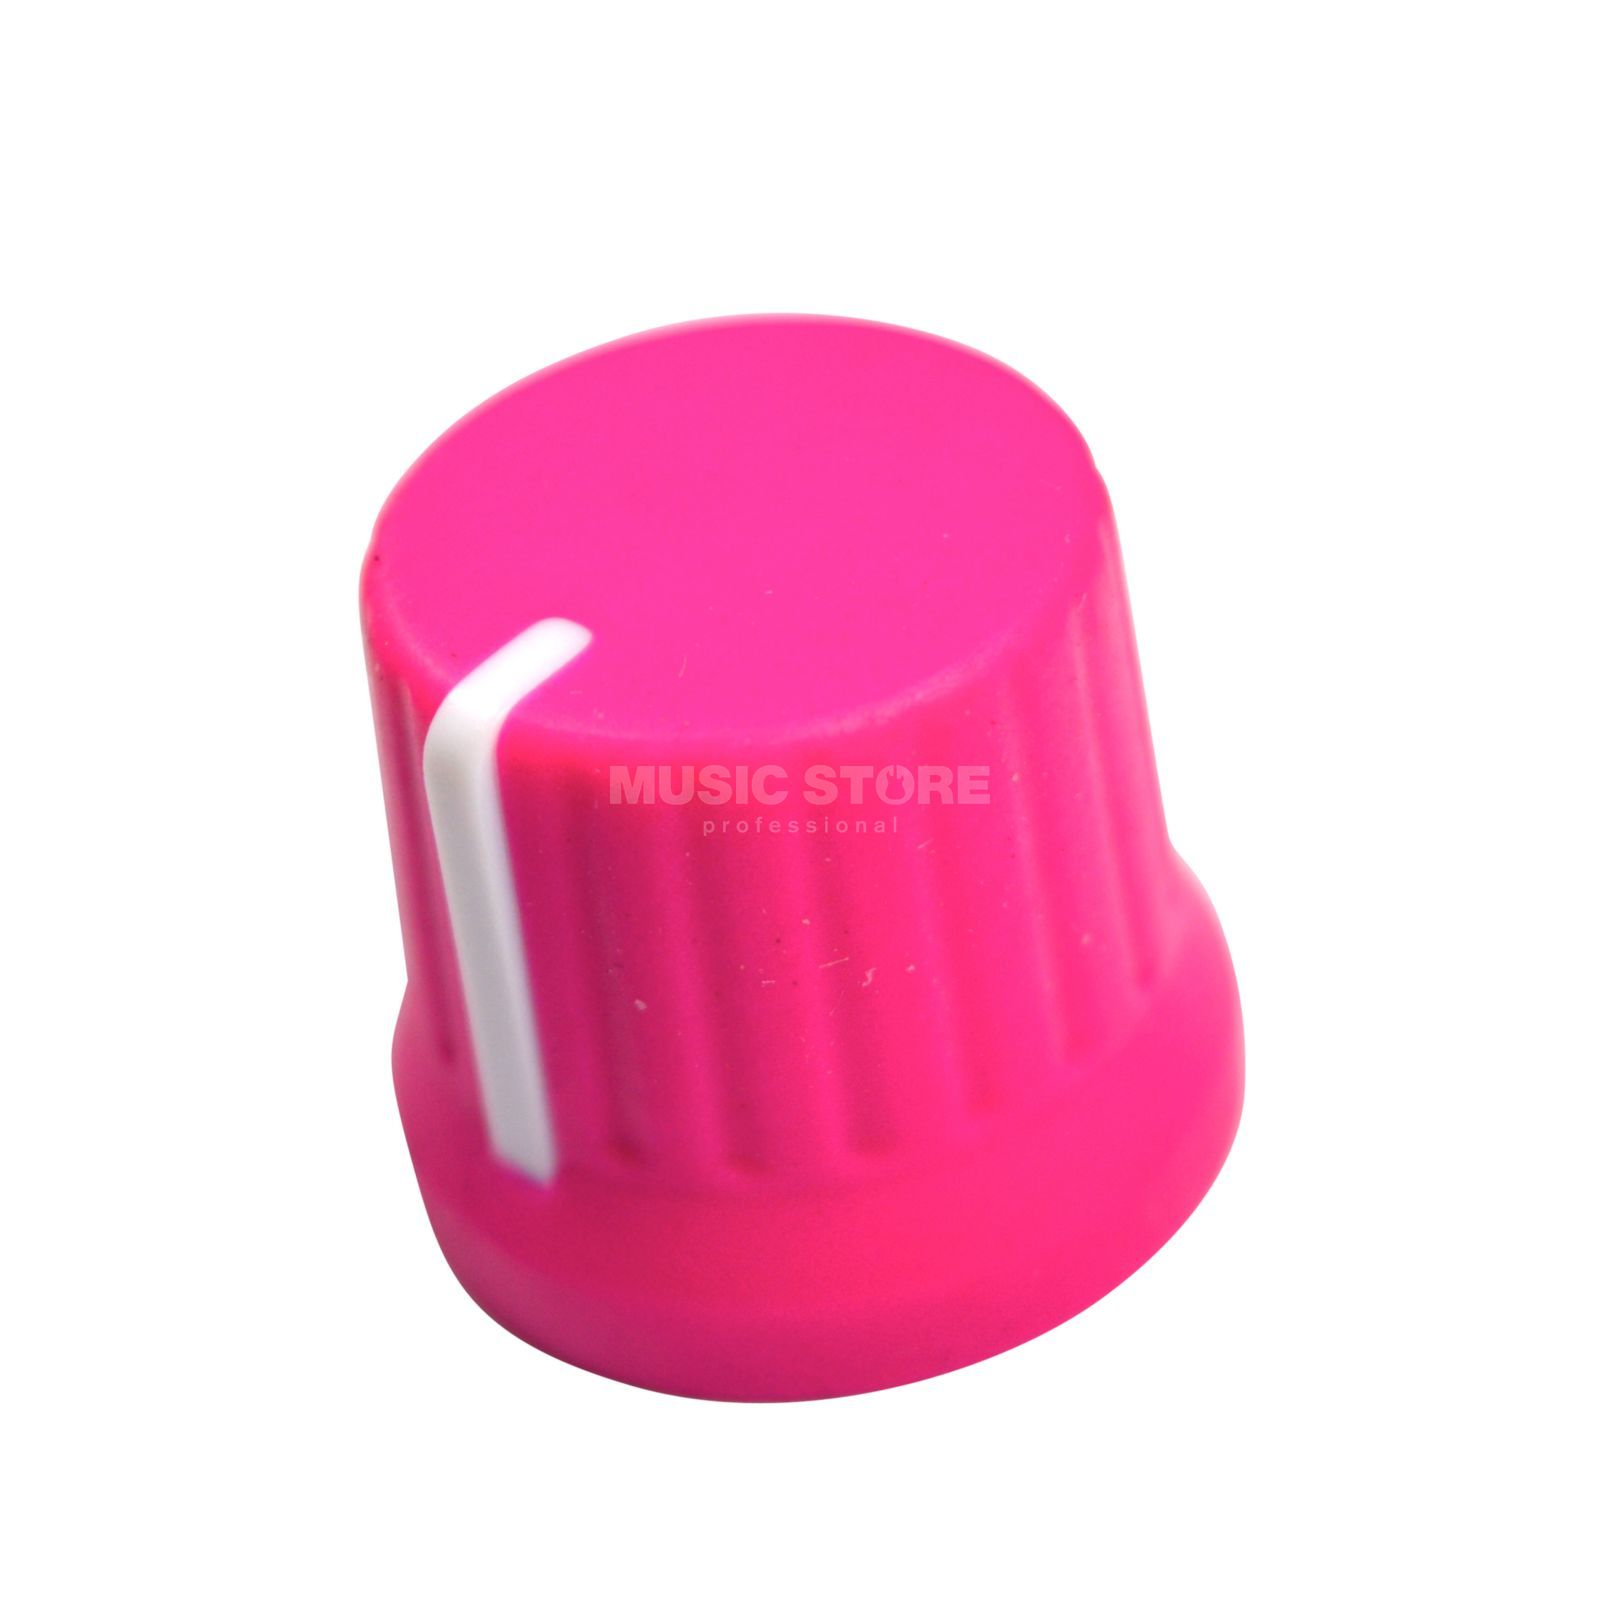 DJ TECHTOOLS Chroma Caps Fatty Knob magenta  Product Image